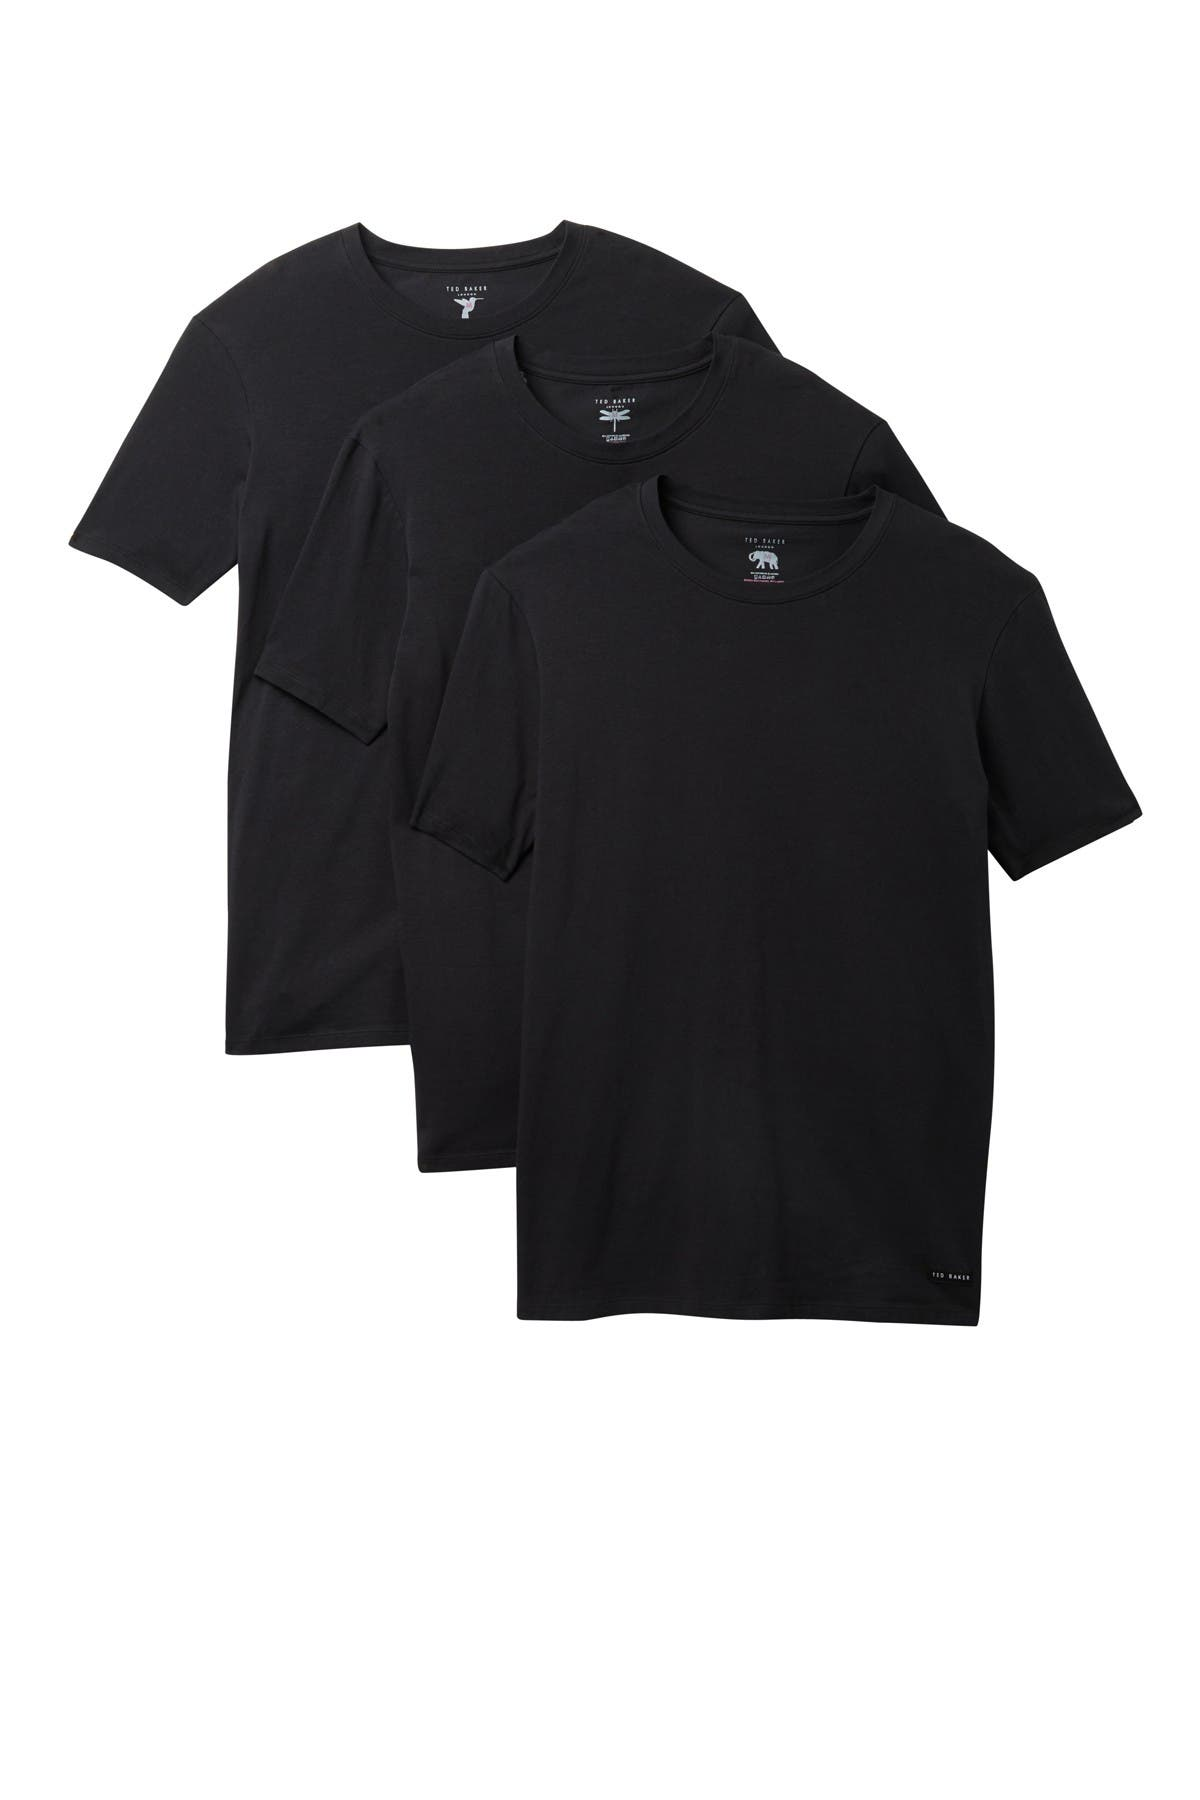 Image of Ted Baker London Cotton Blend Stretch Crew Neck T-Shirt - Pack of 3